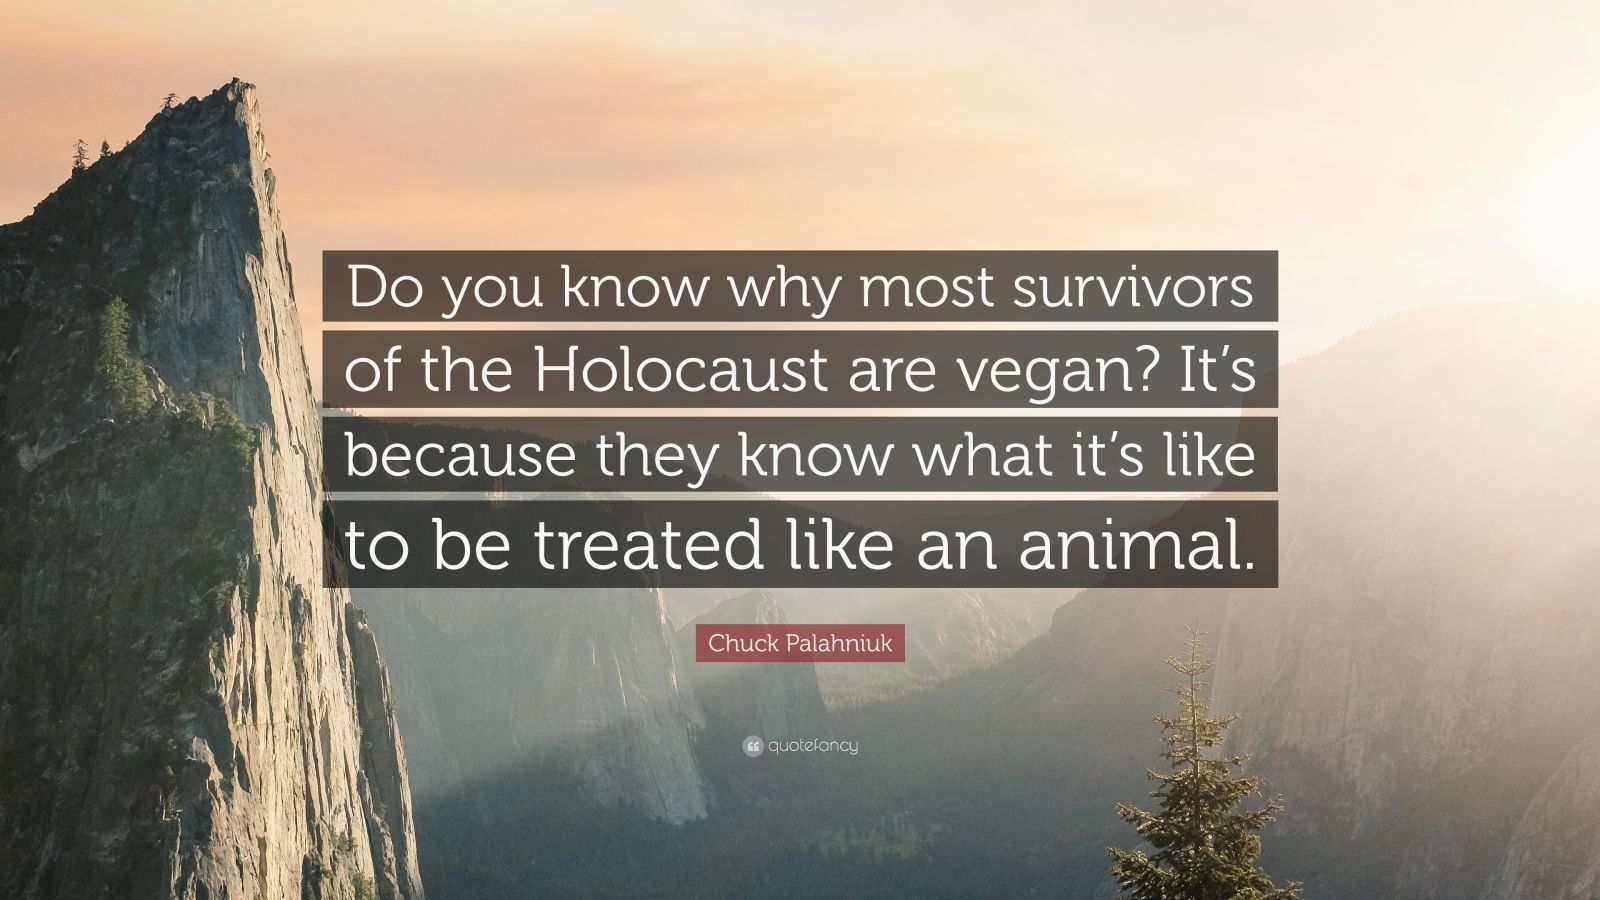 """Chuck Palahniuk Quote: """"Do you know why most survivors of the Holocaust are vegan? It's because they know what it's like to be treated like an animal."""""""